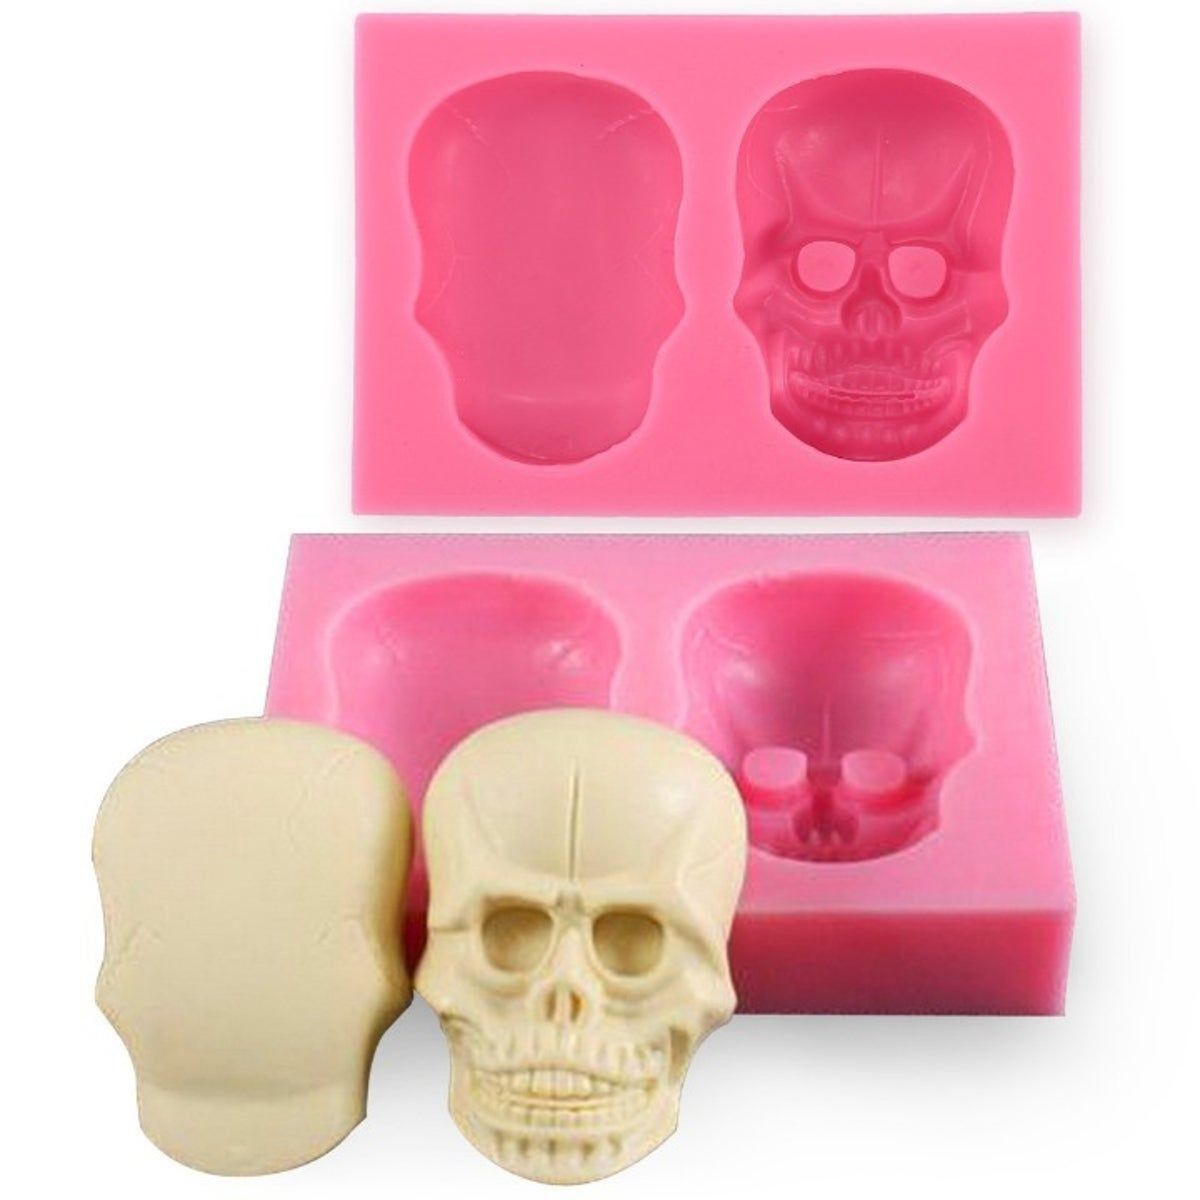 3D Skull Silicone Mold Fondant Sugar – Products